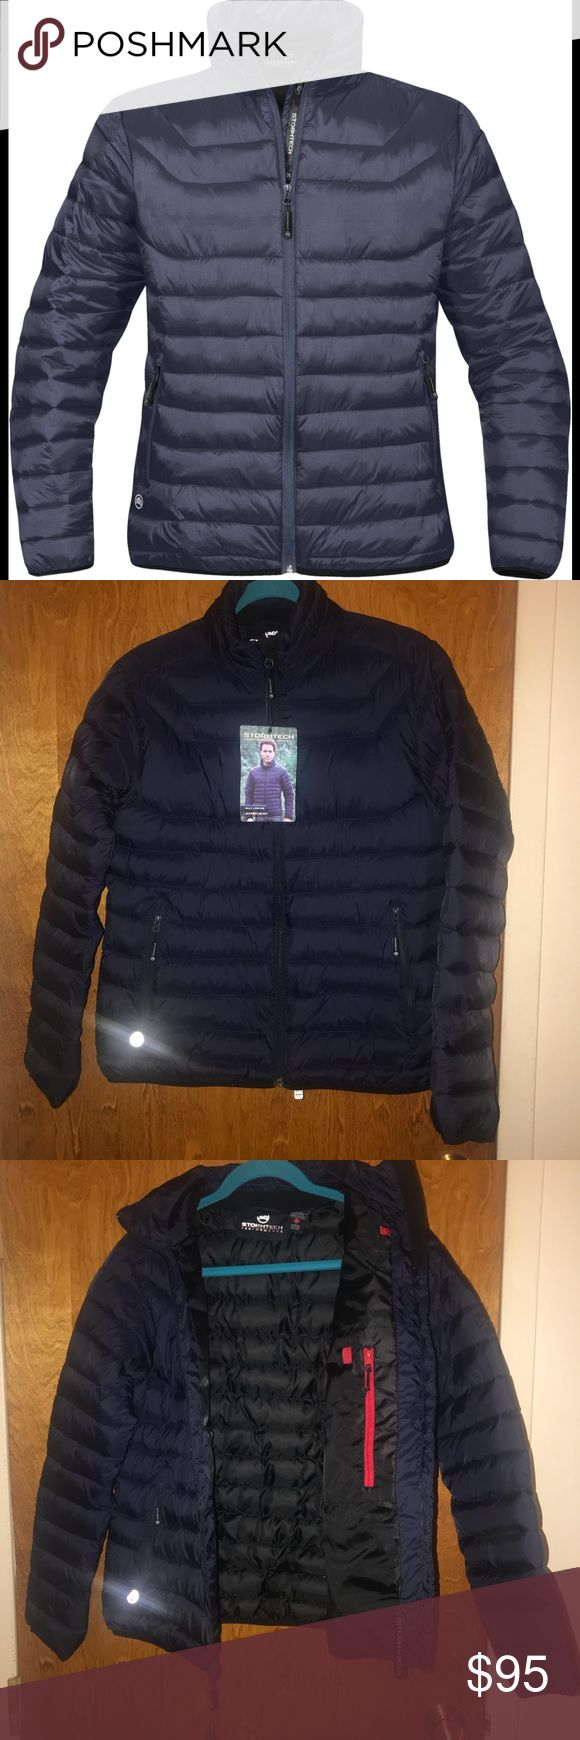 Stormtech Women's Altitude Jacket. Size M Size medium. Navy blue. Ultra lightweight and designed to keep the cold weather out, this polyfill jacket offers superior thermal properties, while it's quilted baffles stabilize the fill to maintain consistent warmth.   Water resistant Articulated sleeves Internal full length storm flap Internal media pocket with audio port 100% Nylon micro ripstop Good for temps +10*C to -10*C stormtech Jackets & Coats Puffers